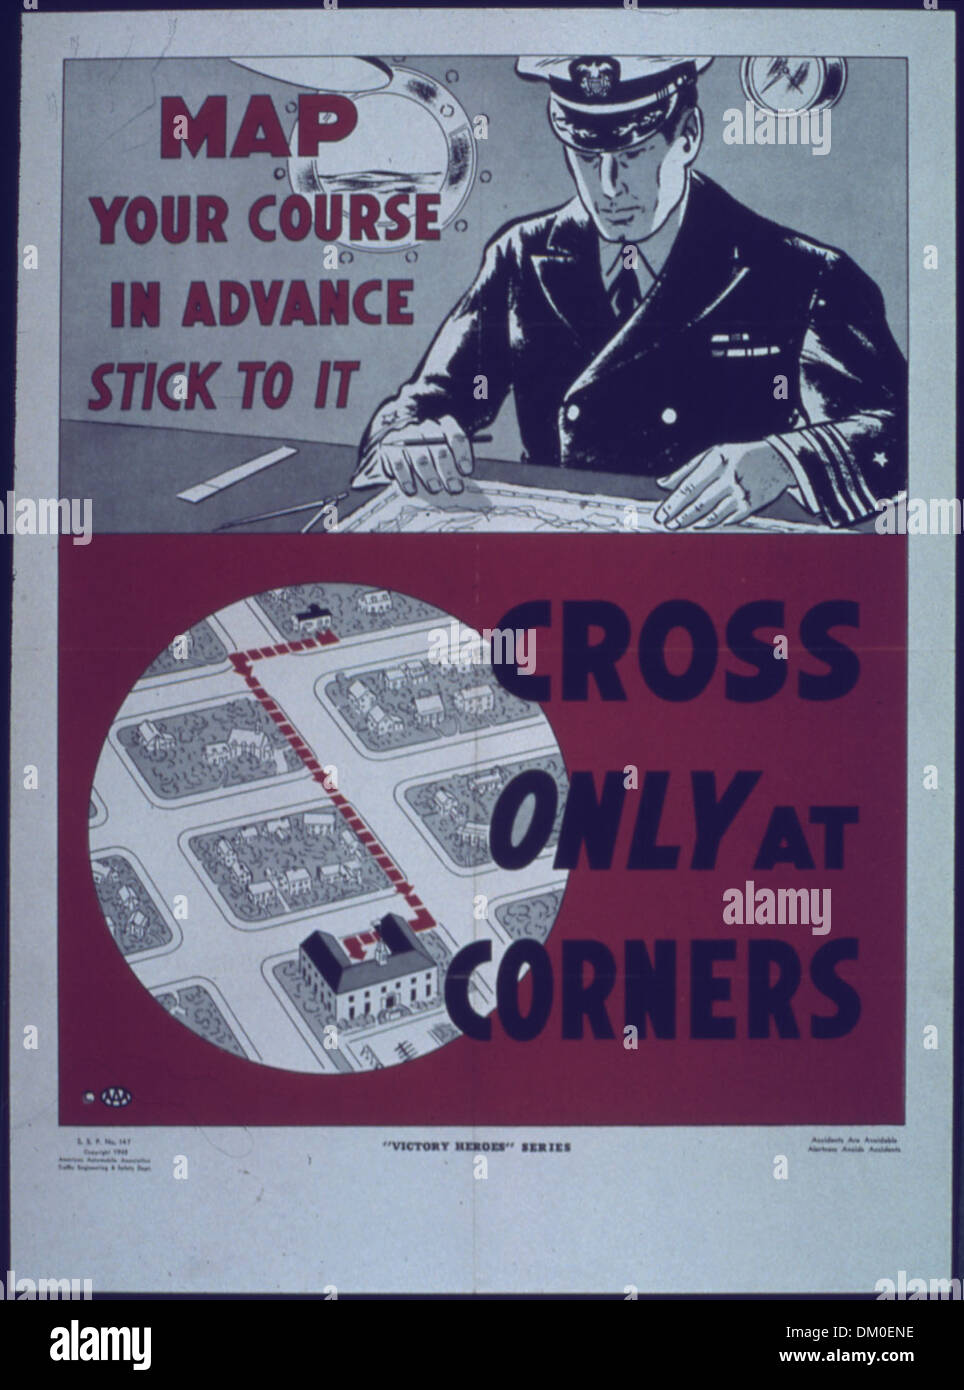 'Map Your Course in Advance Stick To It...Cross Only at Corners' 514096 - Stock Image